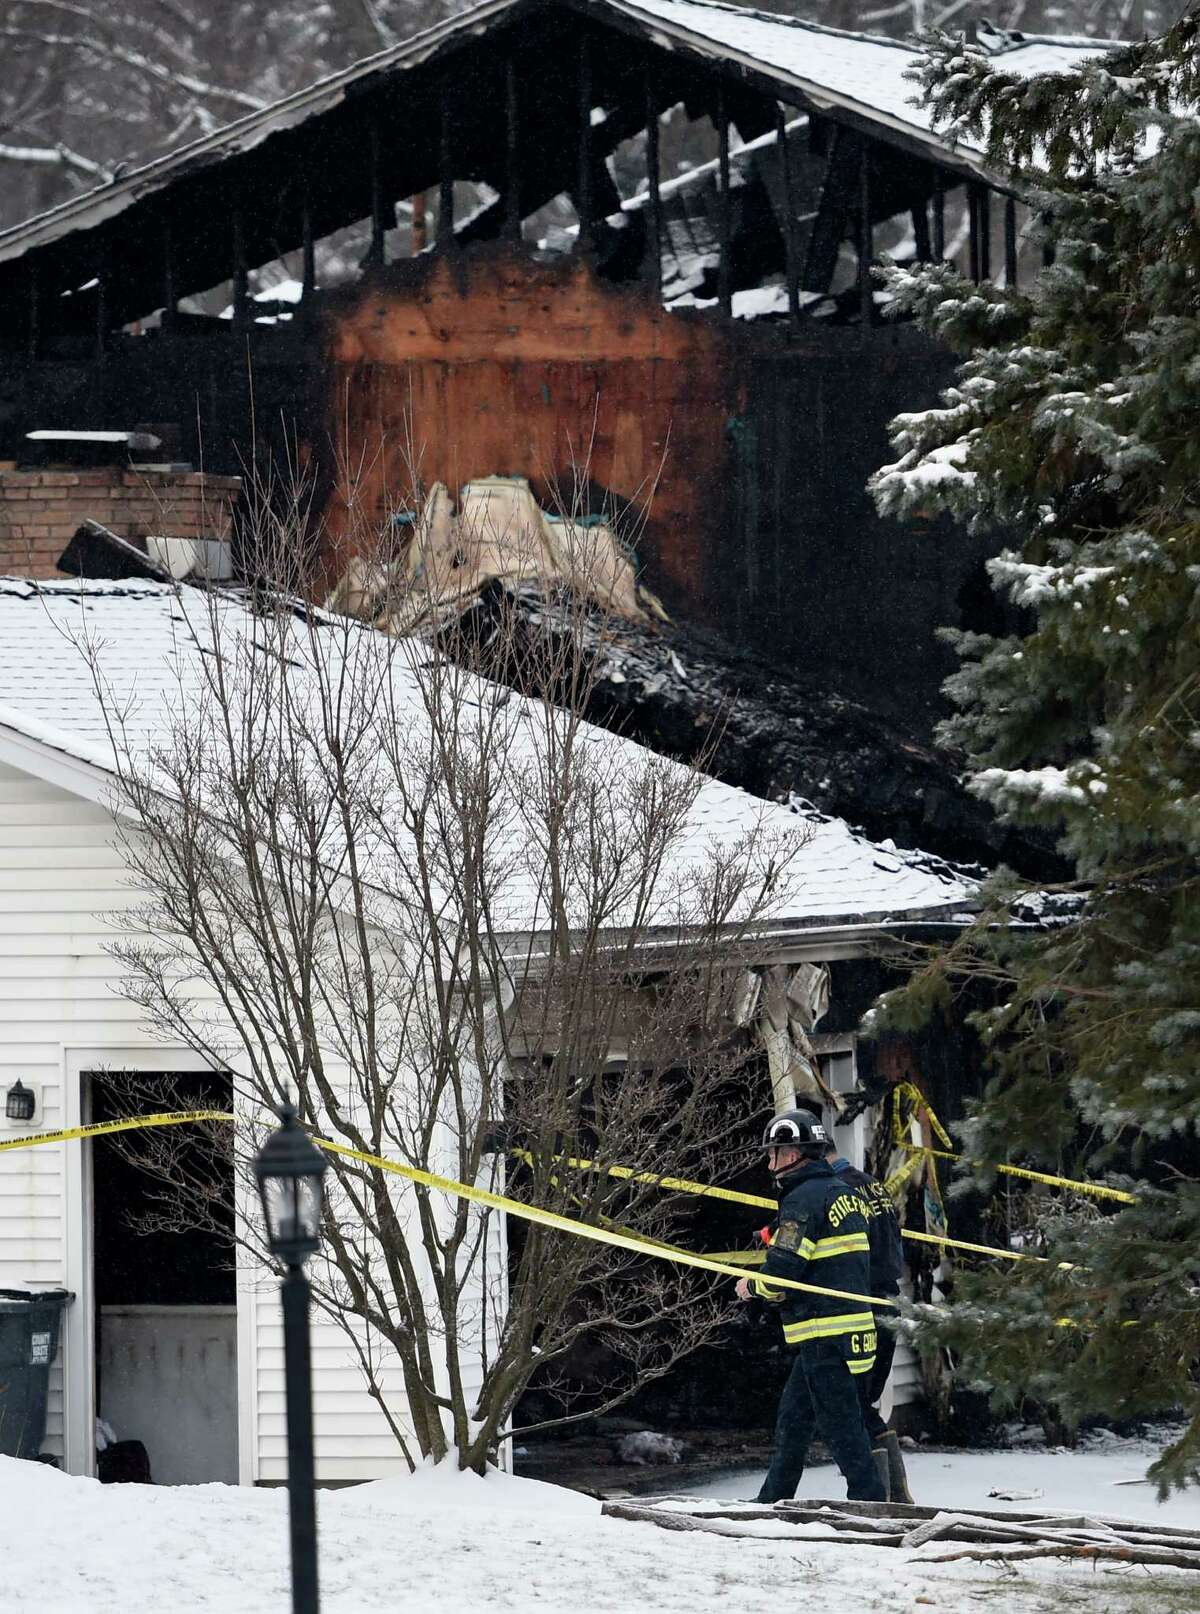 Law enforcement on the local and state level investigate a fatal fire Wednesday morning, Feb. 10, 2016, involving a Colonie Police officer and his family at 35 Schalren Dr. early Tuesday in Colonie, N.Y. (Skip Dickstein/Times Union)